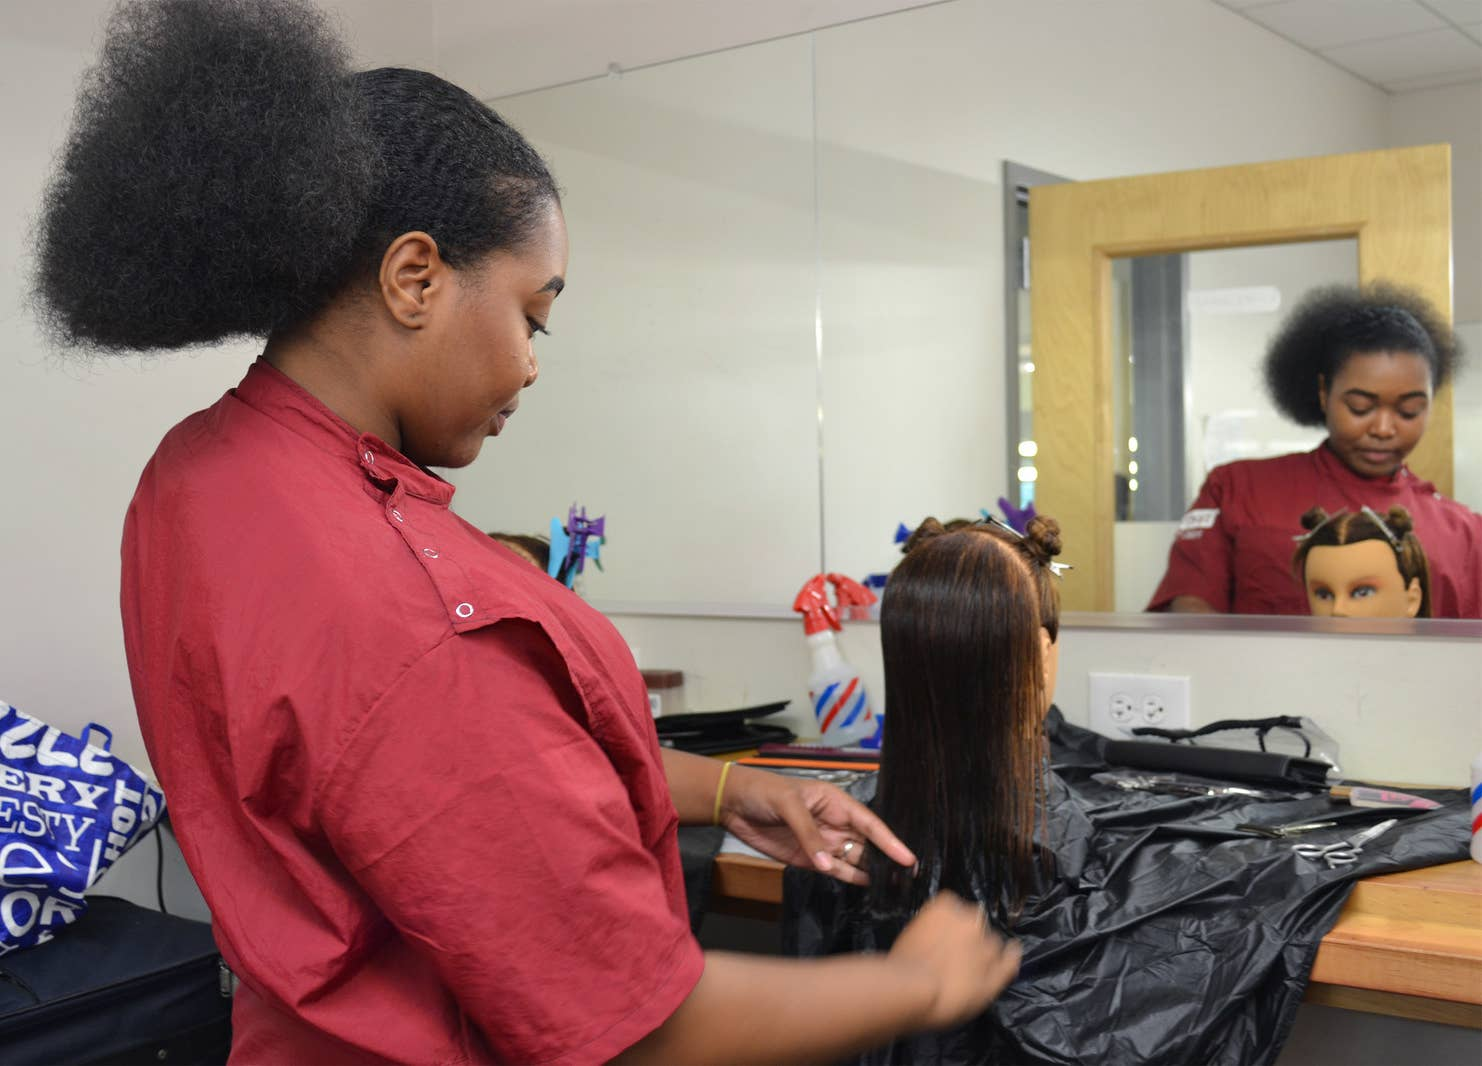 A student practices a haircut in a Pro Way cosmetology class.